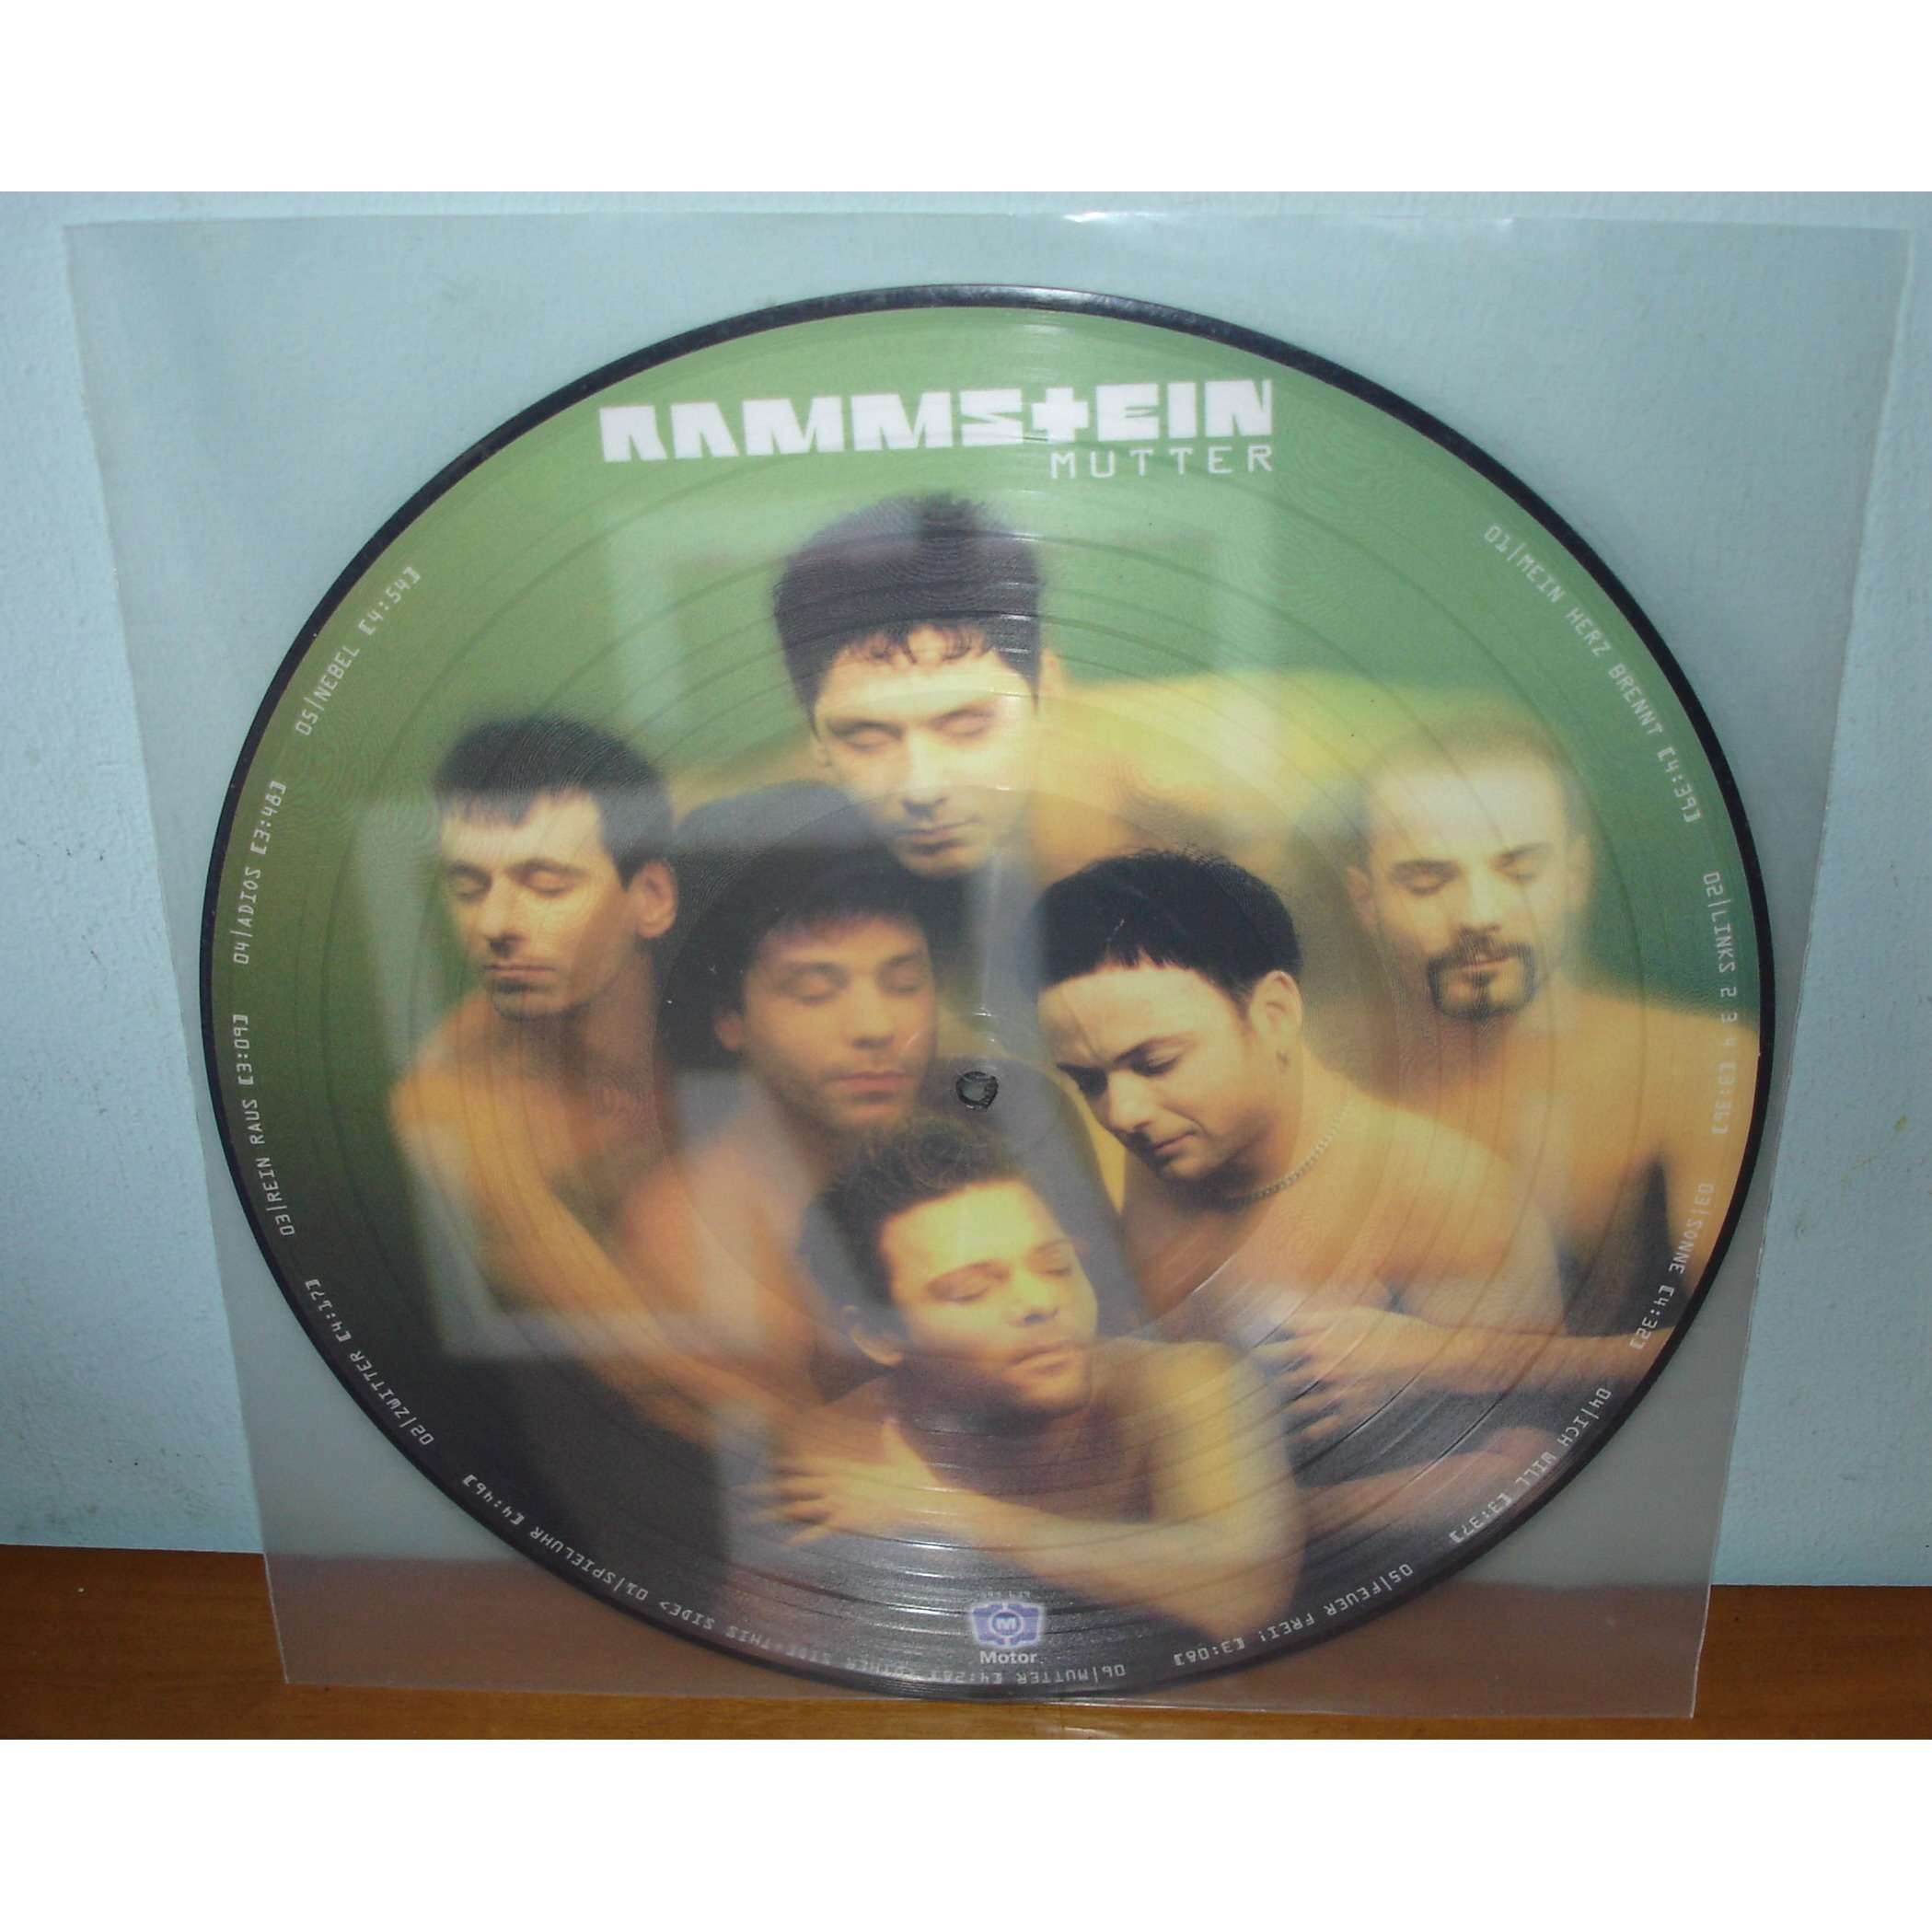 RAMMSTEIN MUTTER (PICTURE DISC)